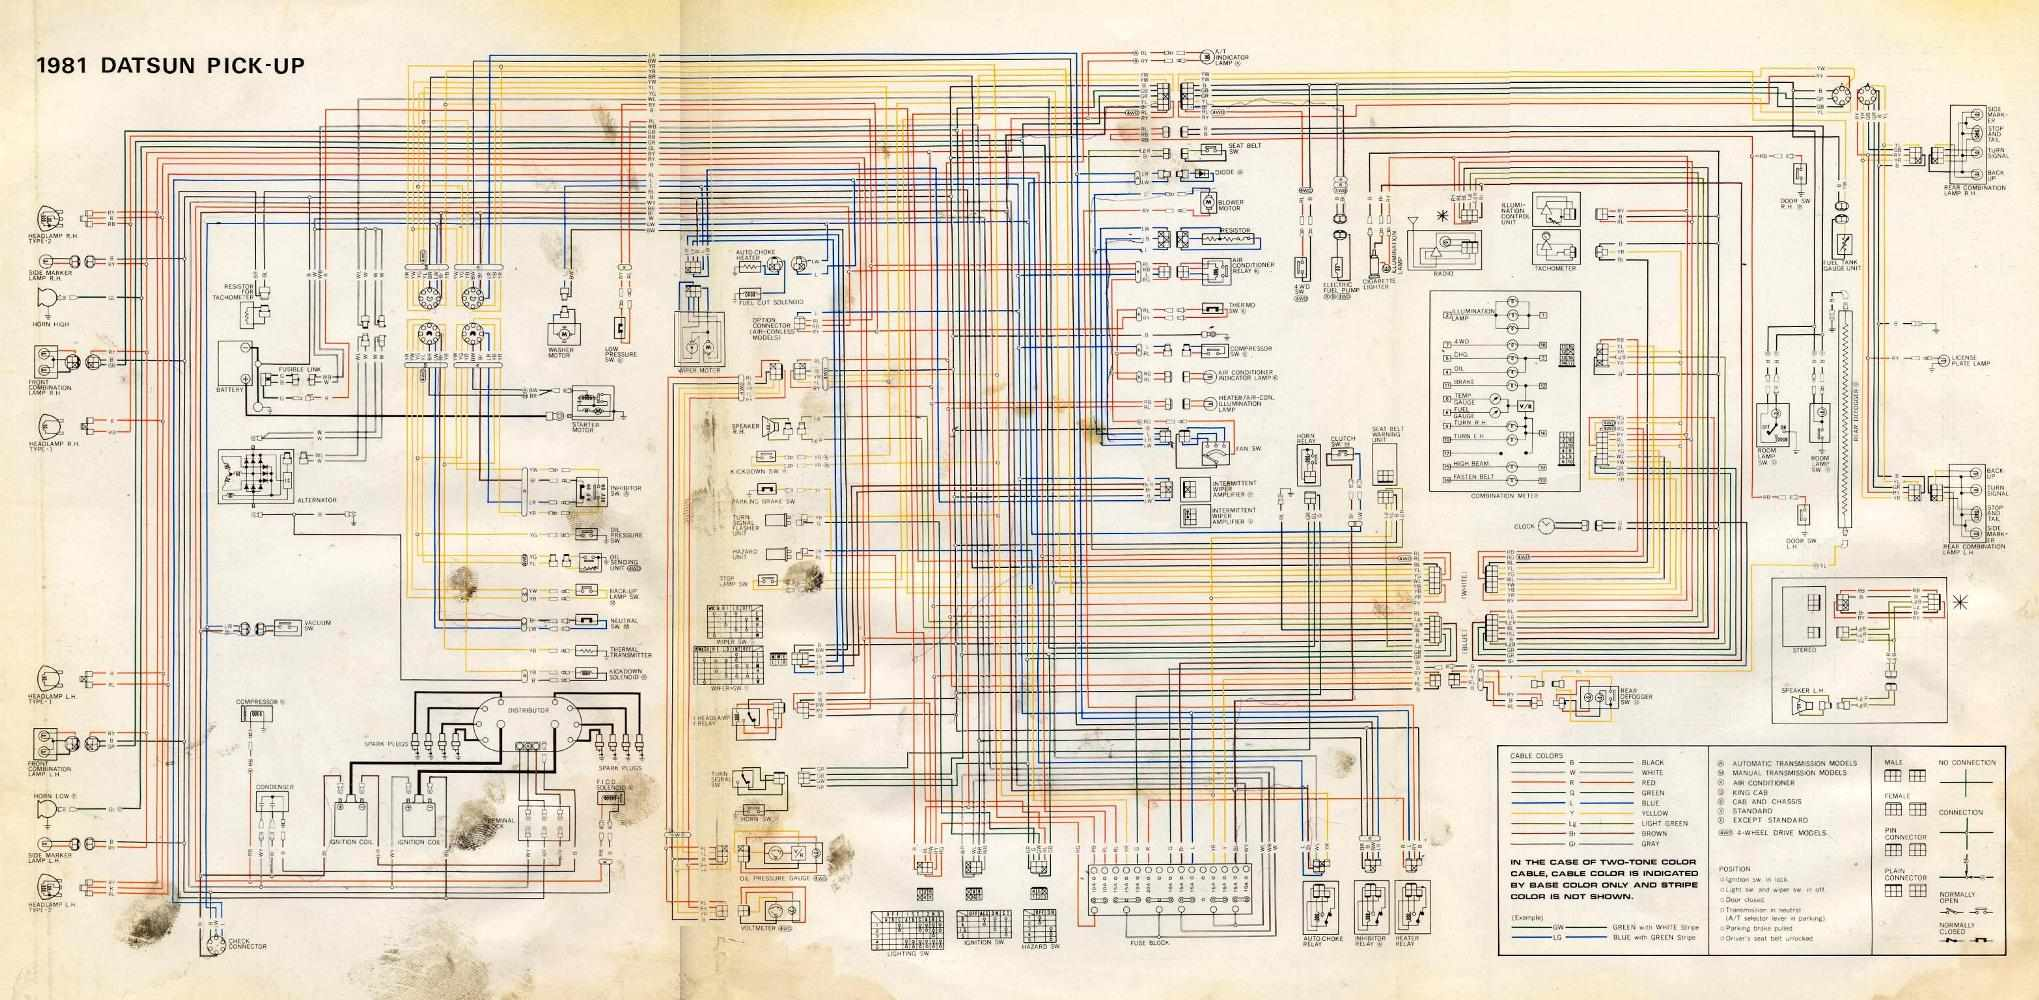 77 Chevy Truck Wiper Wiring Diagram Library 1977 Ford F100 Schematics 1978 C10 For Electrical Diagrams 1972 Chevrolet